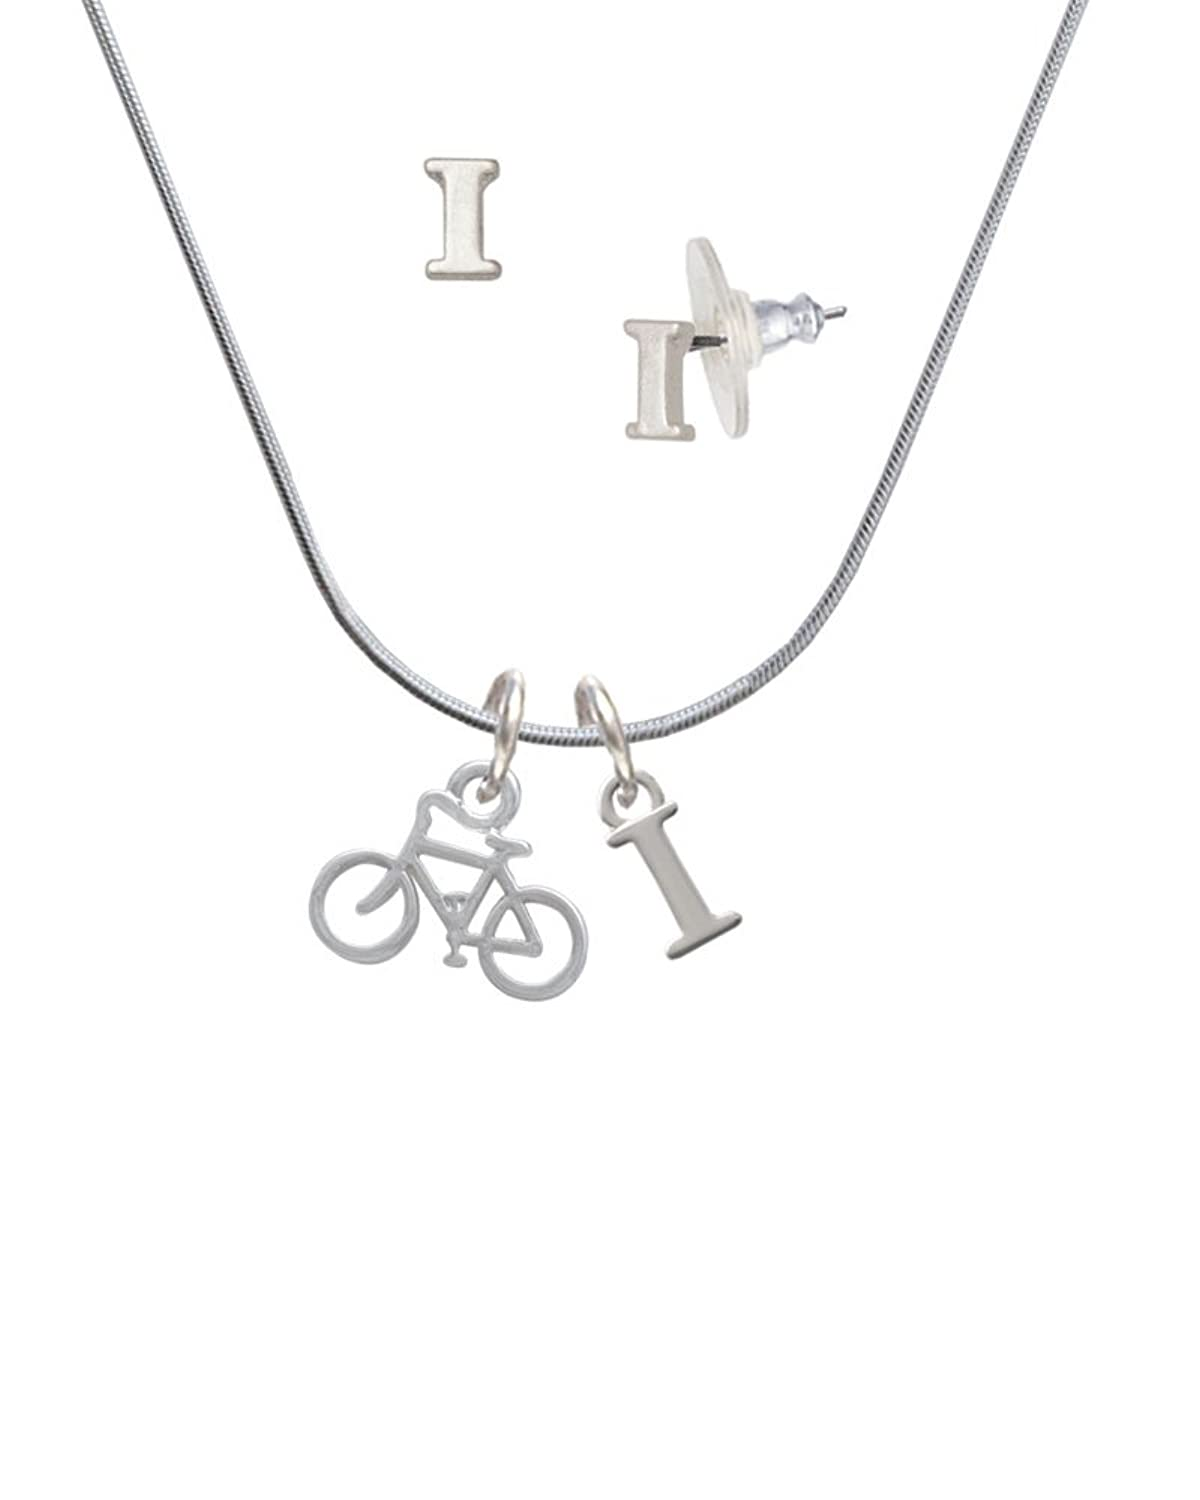 Small Bicycle - I Initial Charm Necklace and Stud Earrings Jewelry Set